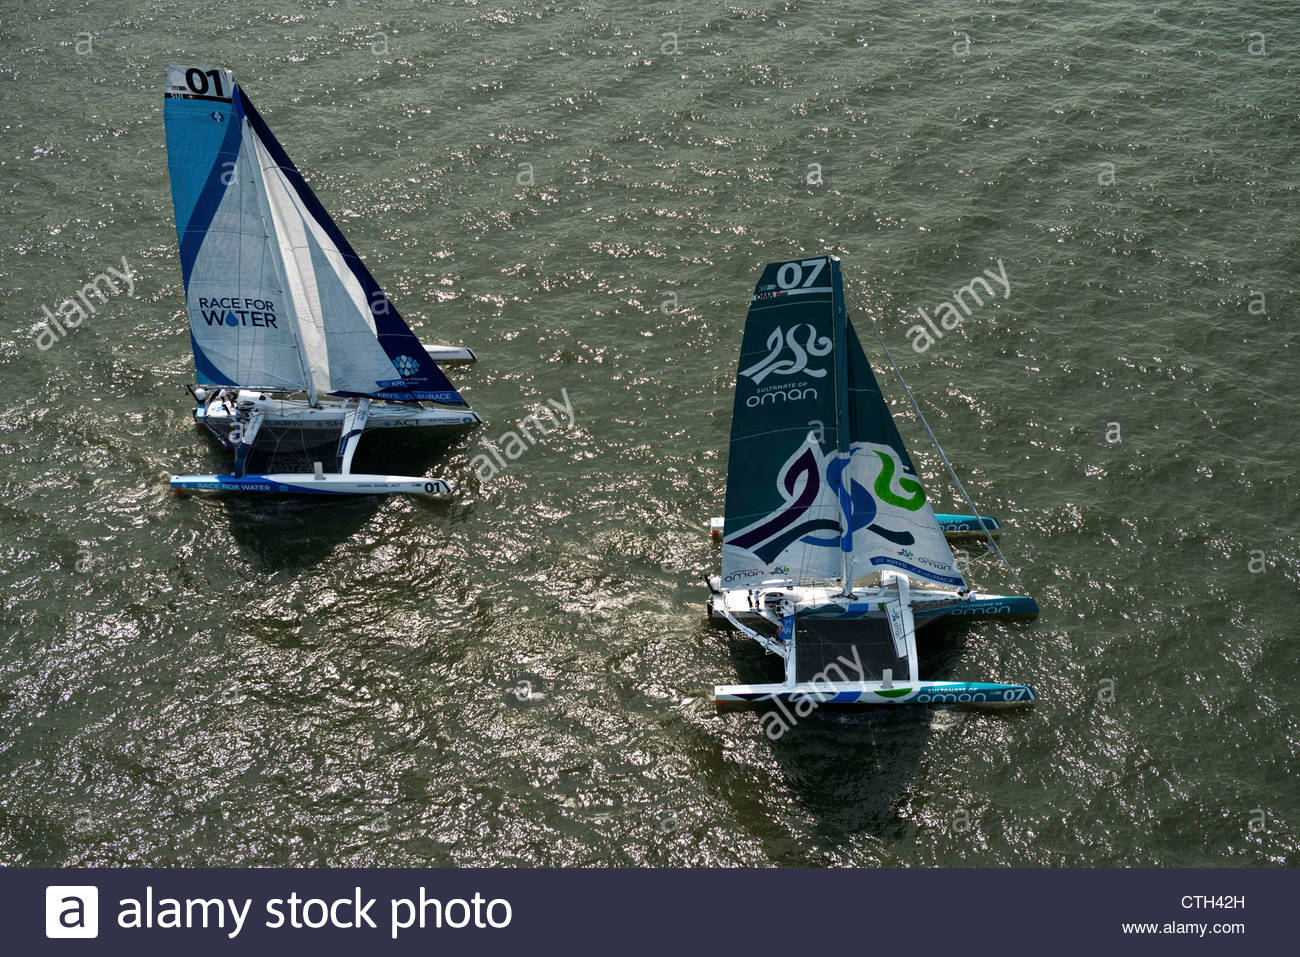 NEW YORK, USA, JULY 7TH 2012: Oman Sail Musandam (MOD70) skippered by Gavignet Sidney from France, and Race for - Stock Image